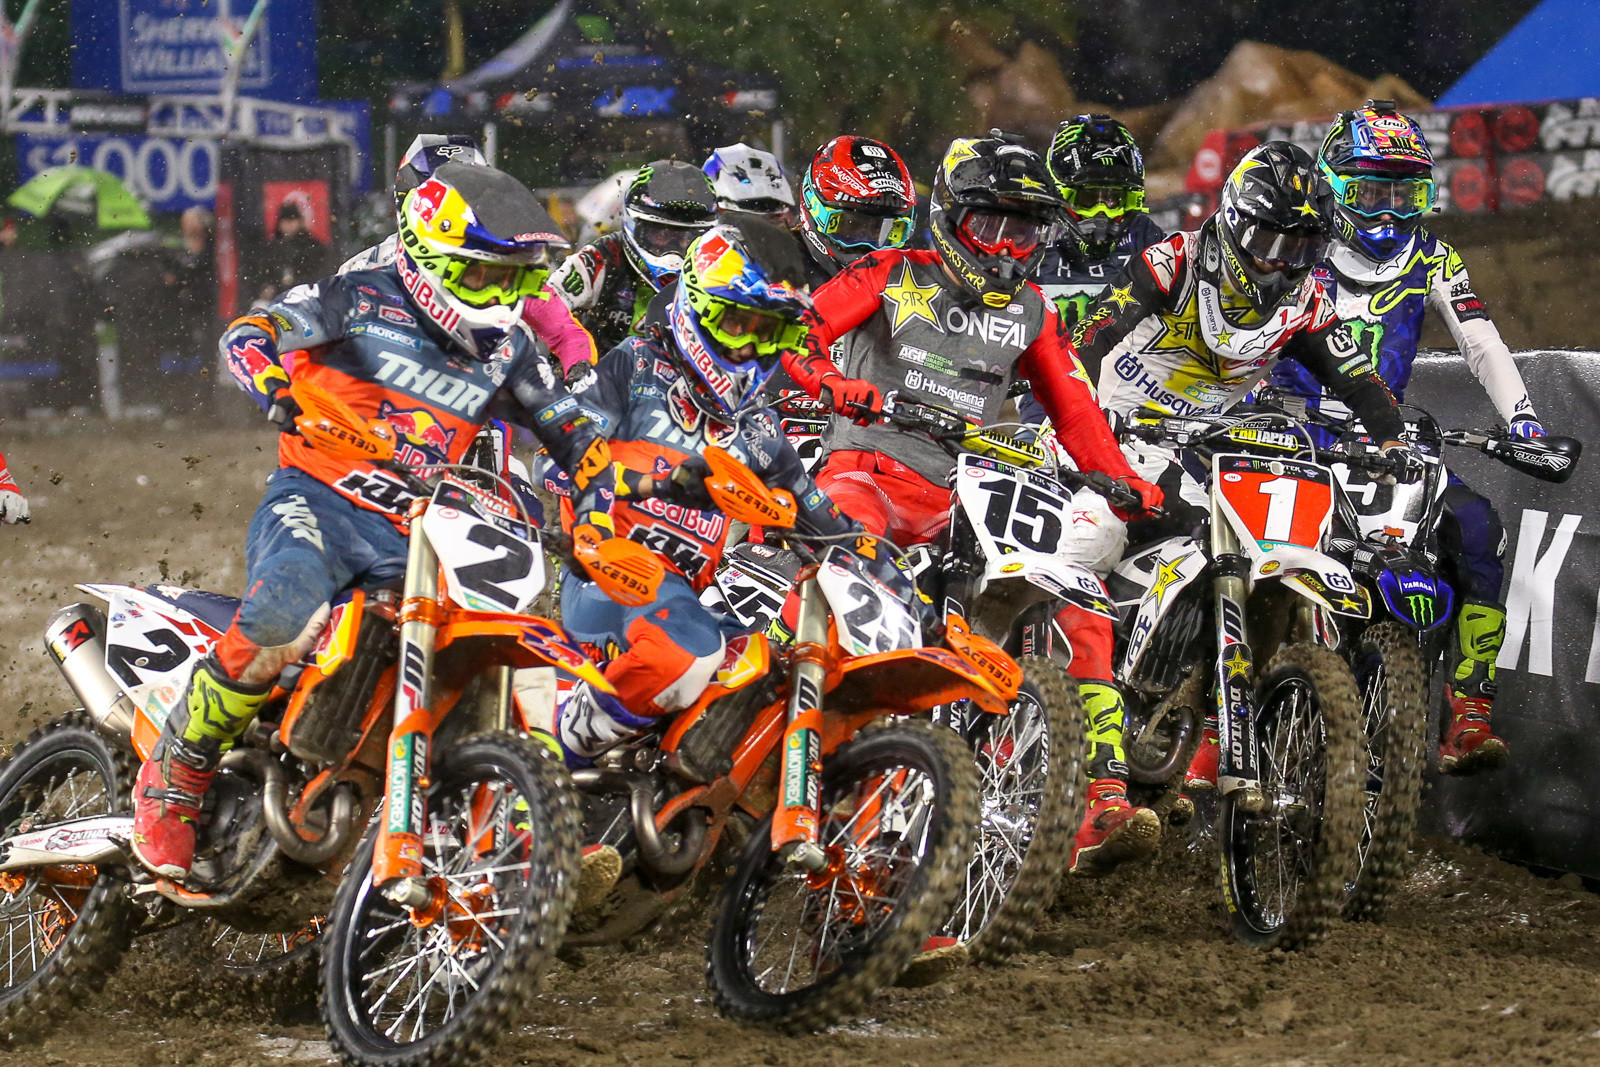 Dean Wilson (15) broke out from the pack and jumped into the lead after the first turn in the 450 main event.